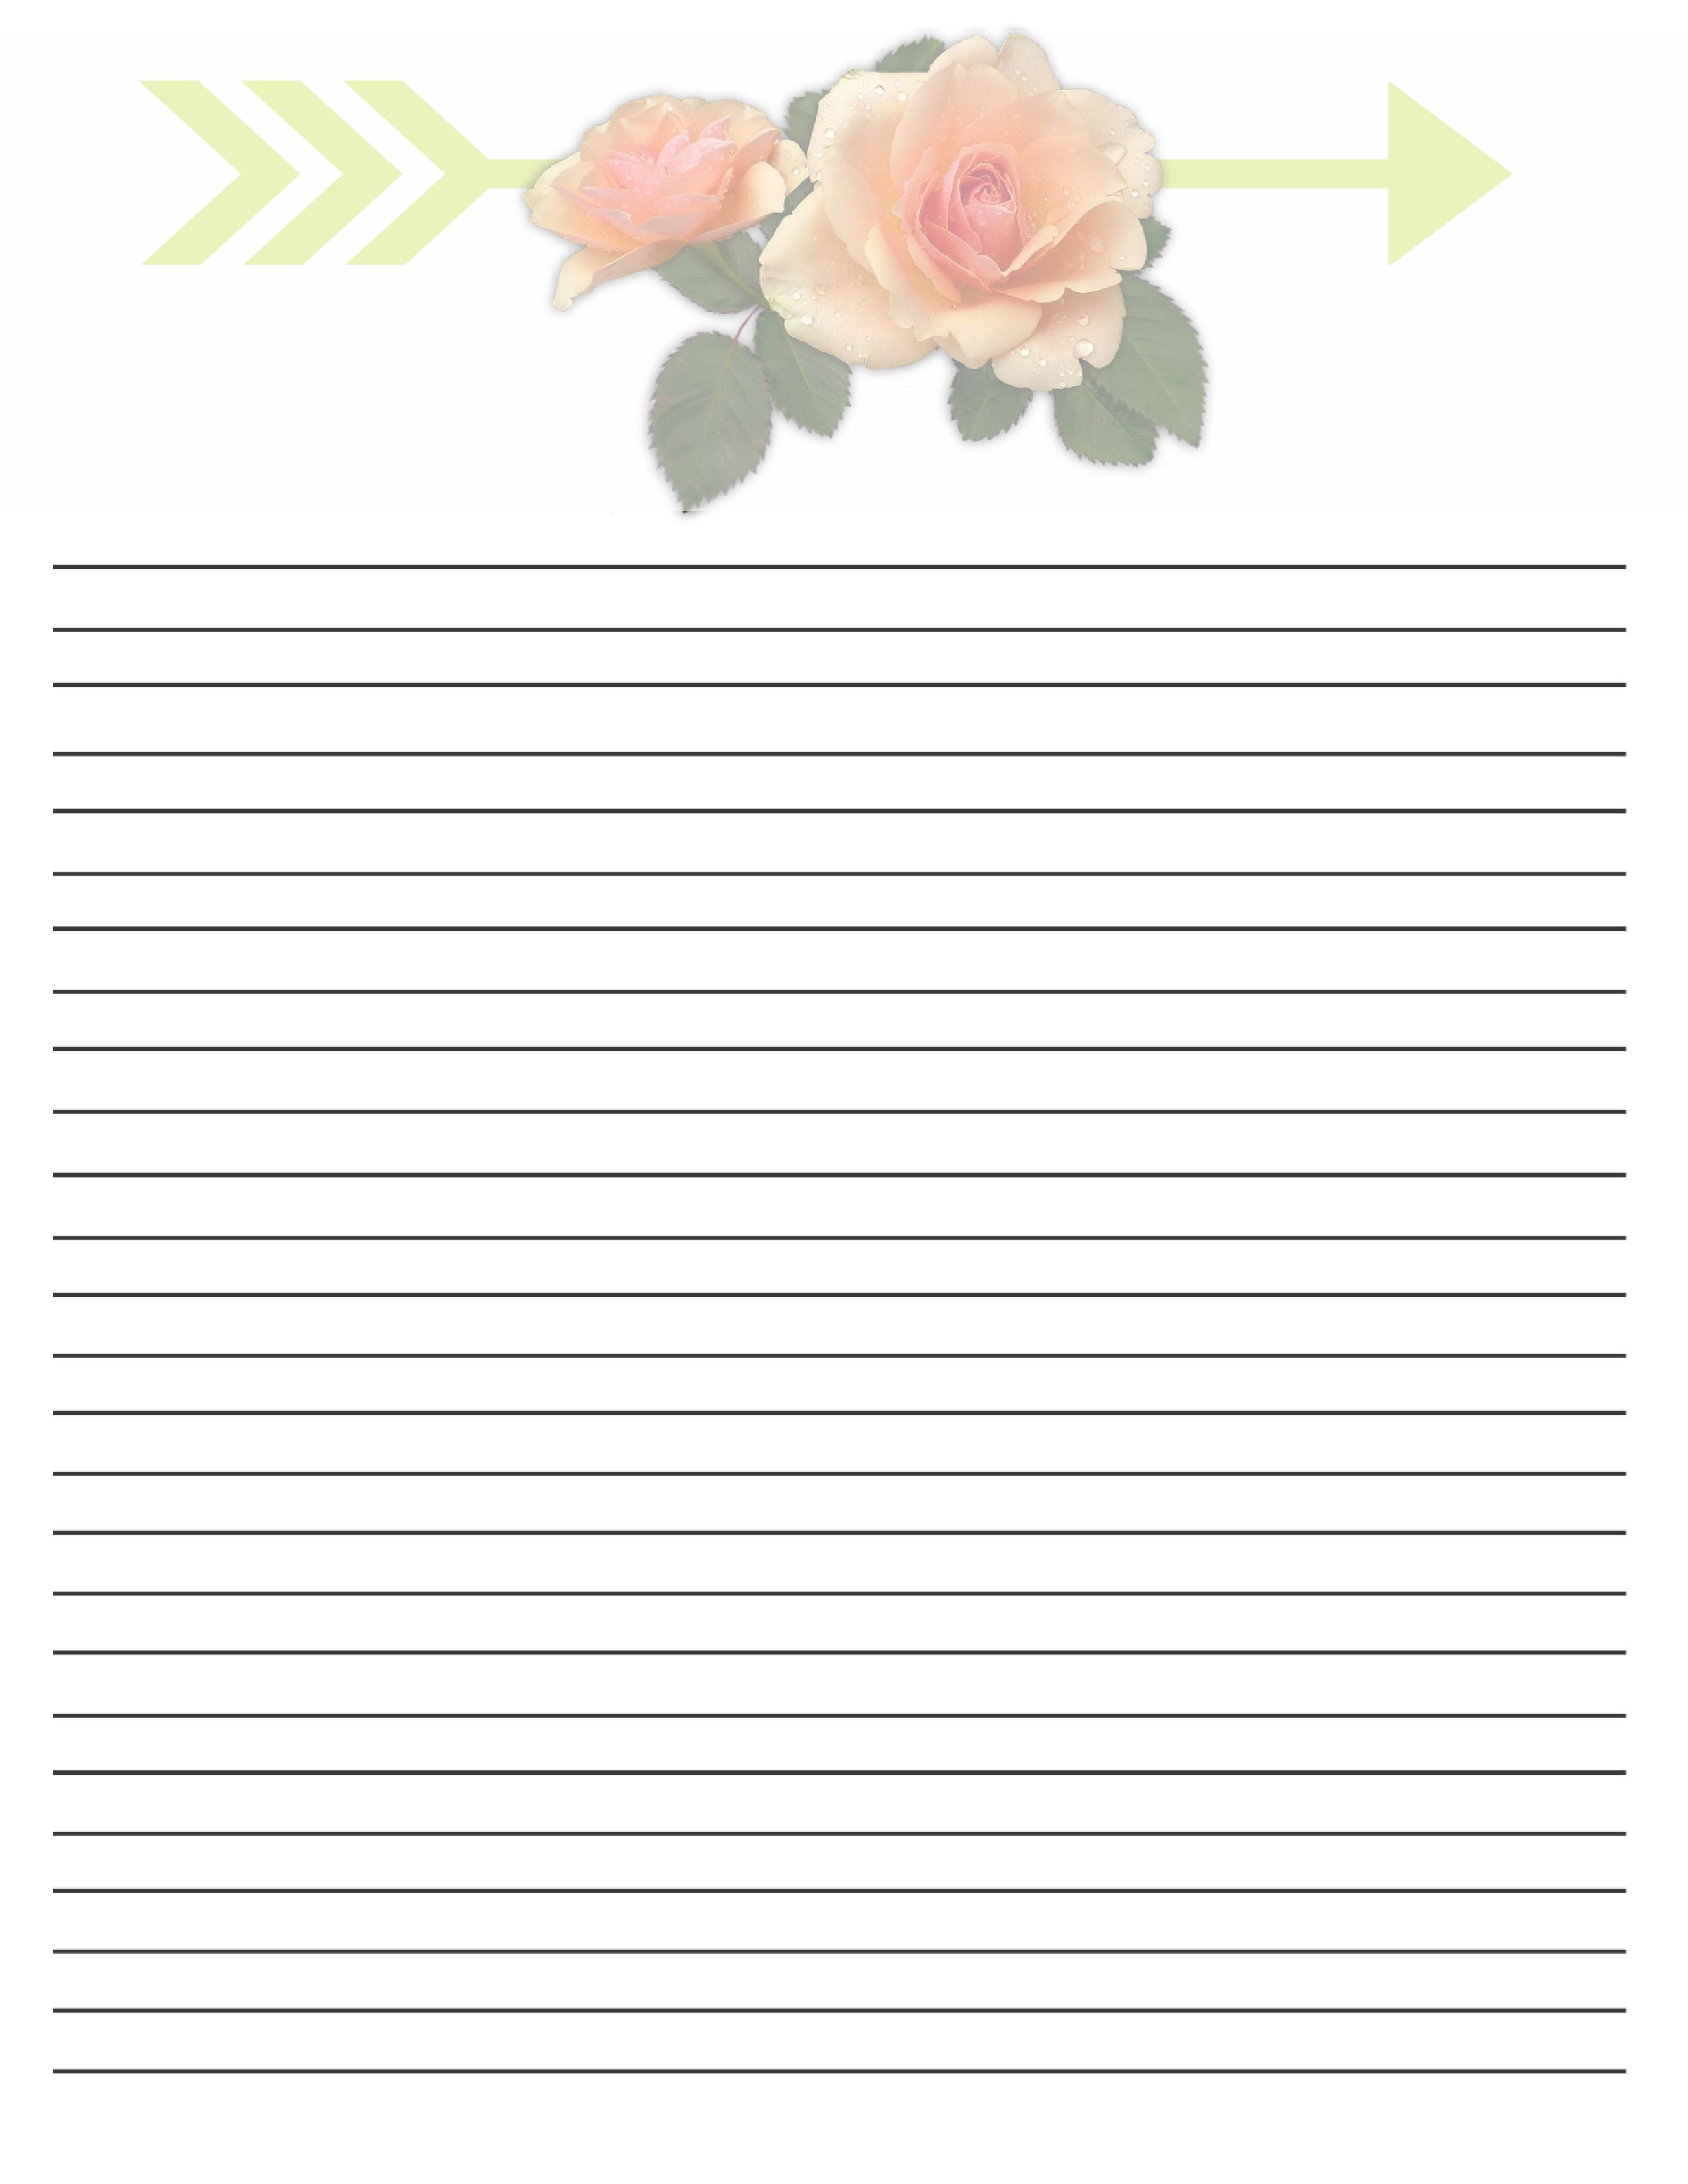 Floral Writing Paper Printables Letter Paper 85 X 11 In Floral